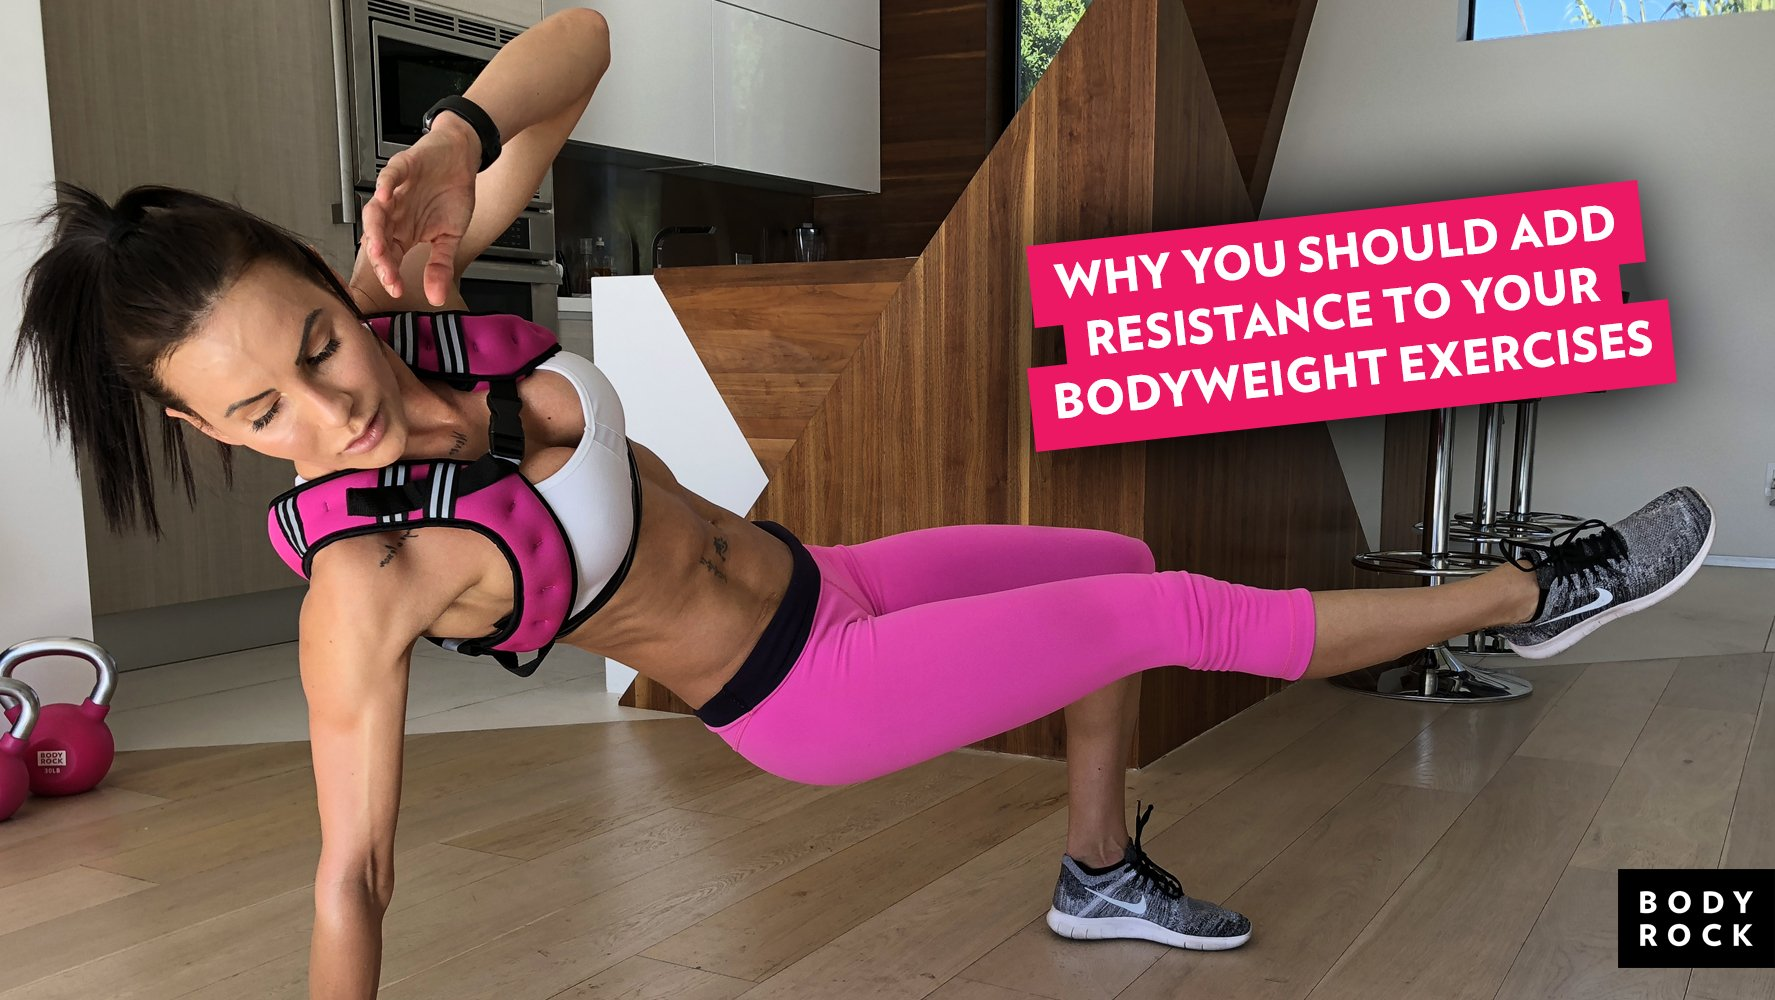 Why You Should Add Resistance To Your Bodyweight Exercises